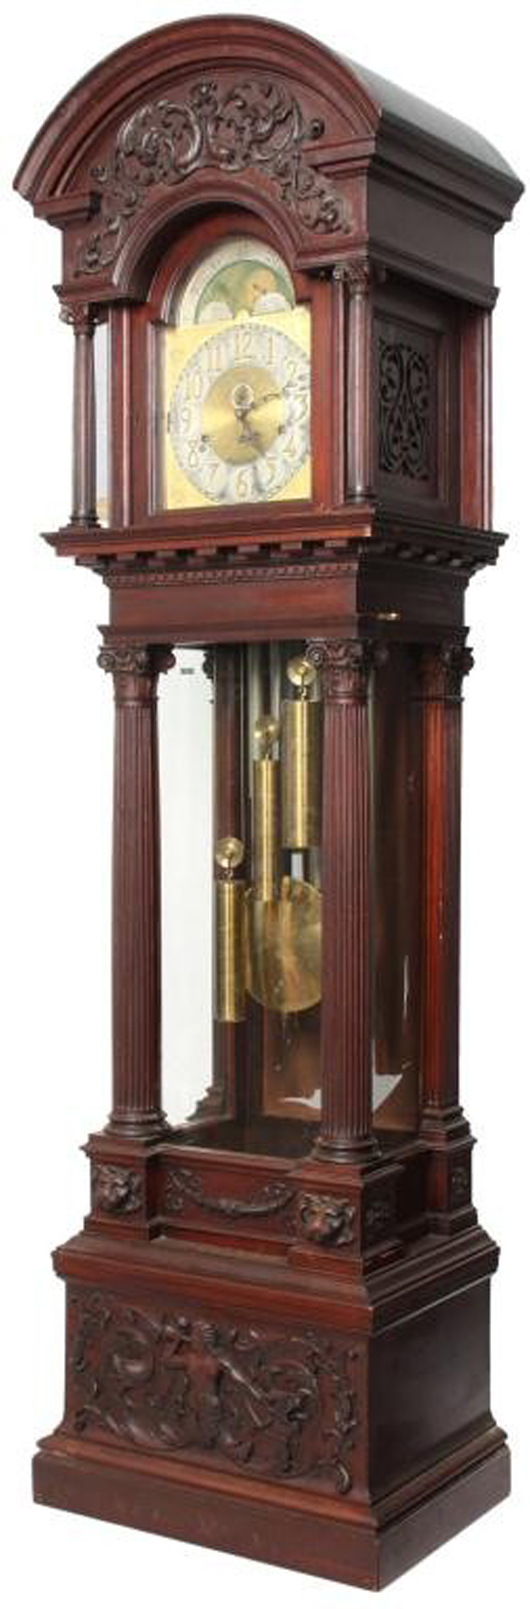 Impressive mahogany figural carved grandfather clock, 103 inches tall (est. $8,000-$12,000). Image courtesy of Fontaine's Auction Gallery.